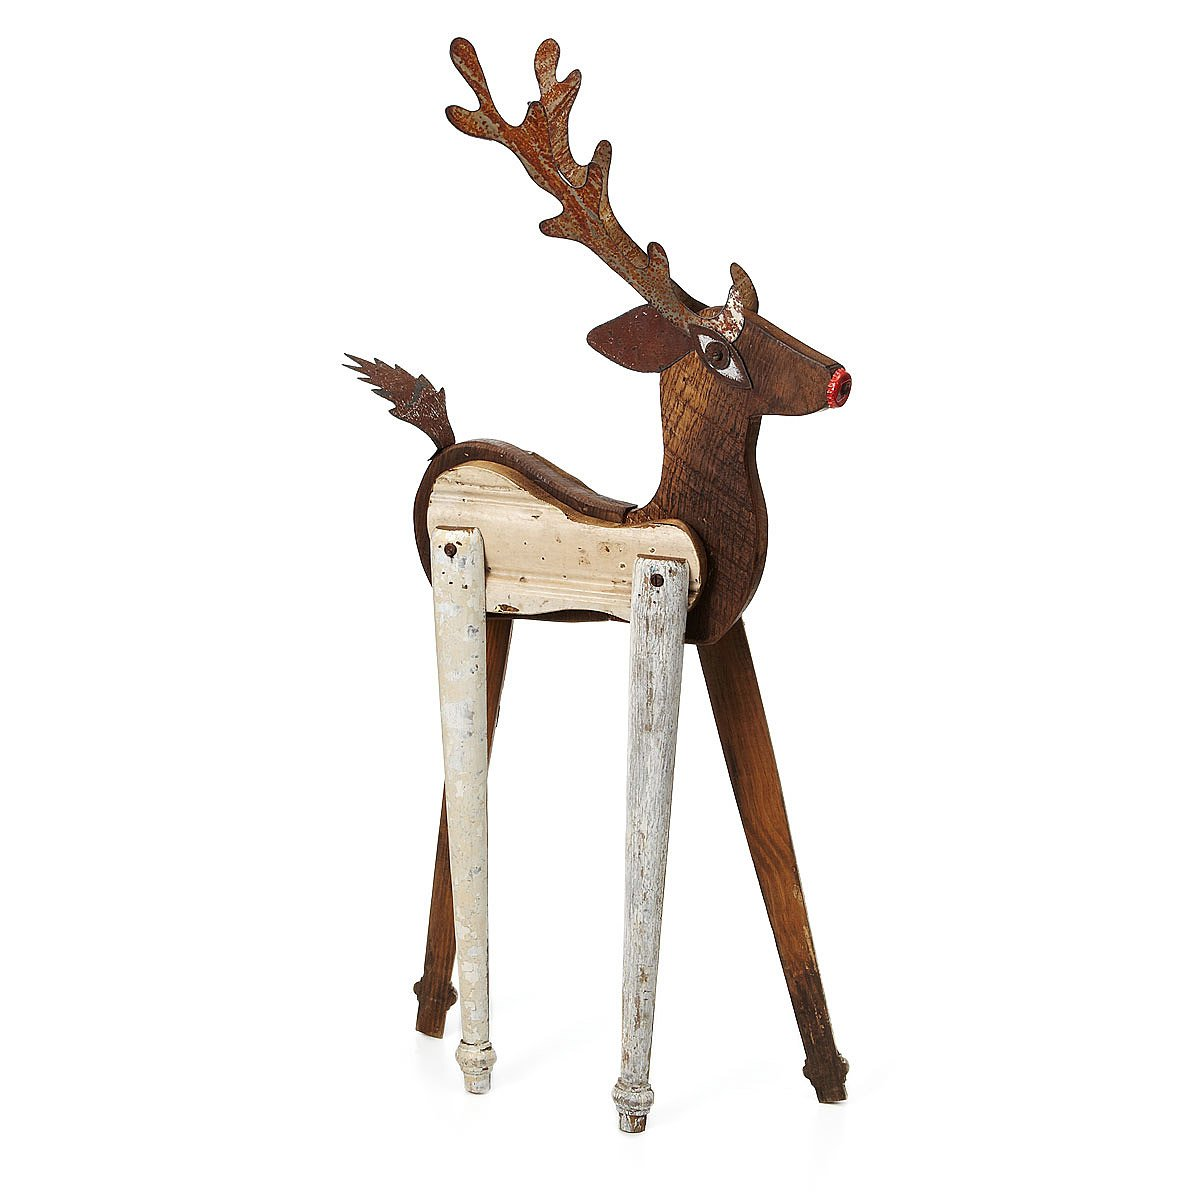 handmade reindeer sculpture 1 thumbnail - Outdoor Wooden Reindeer Christmas Decorations